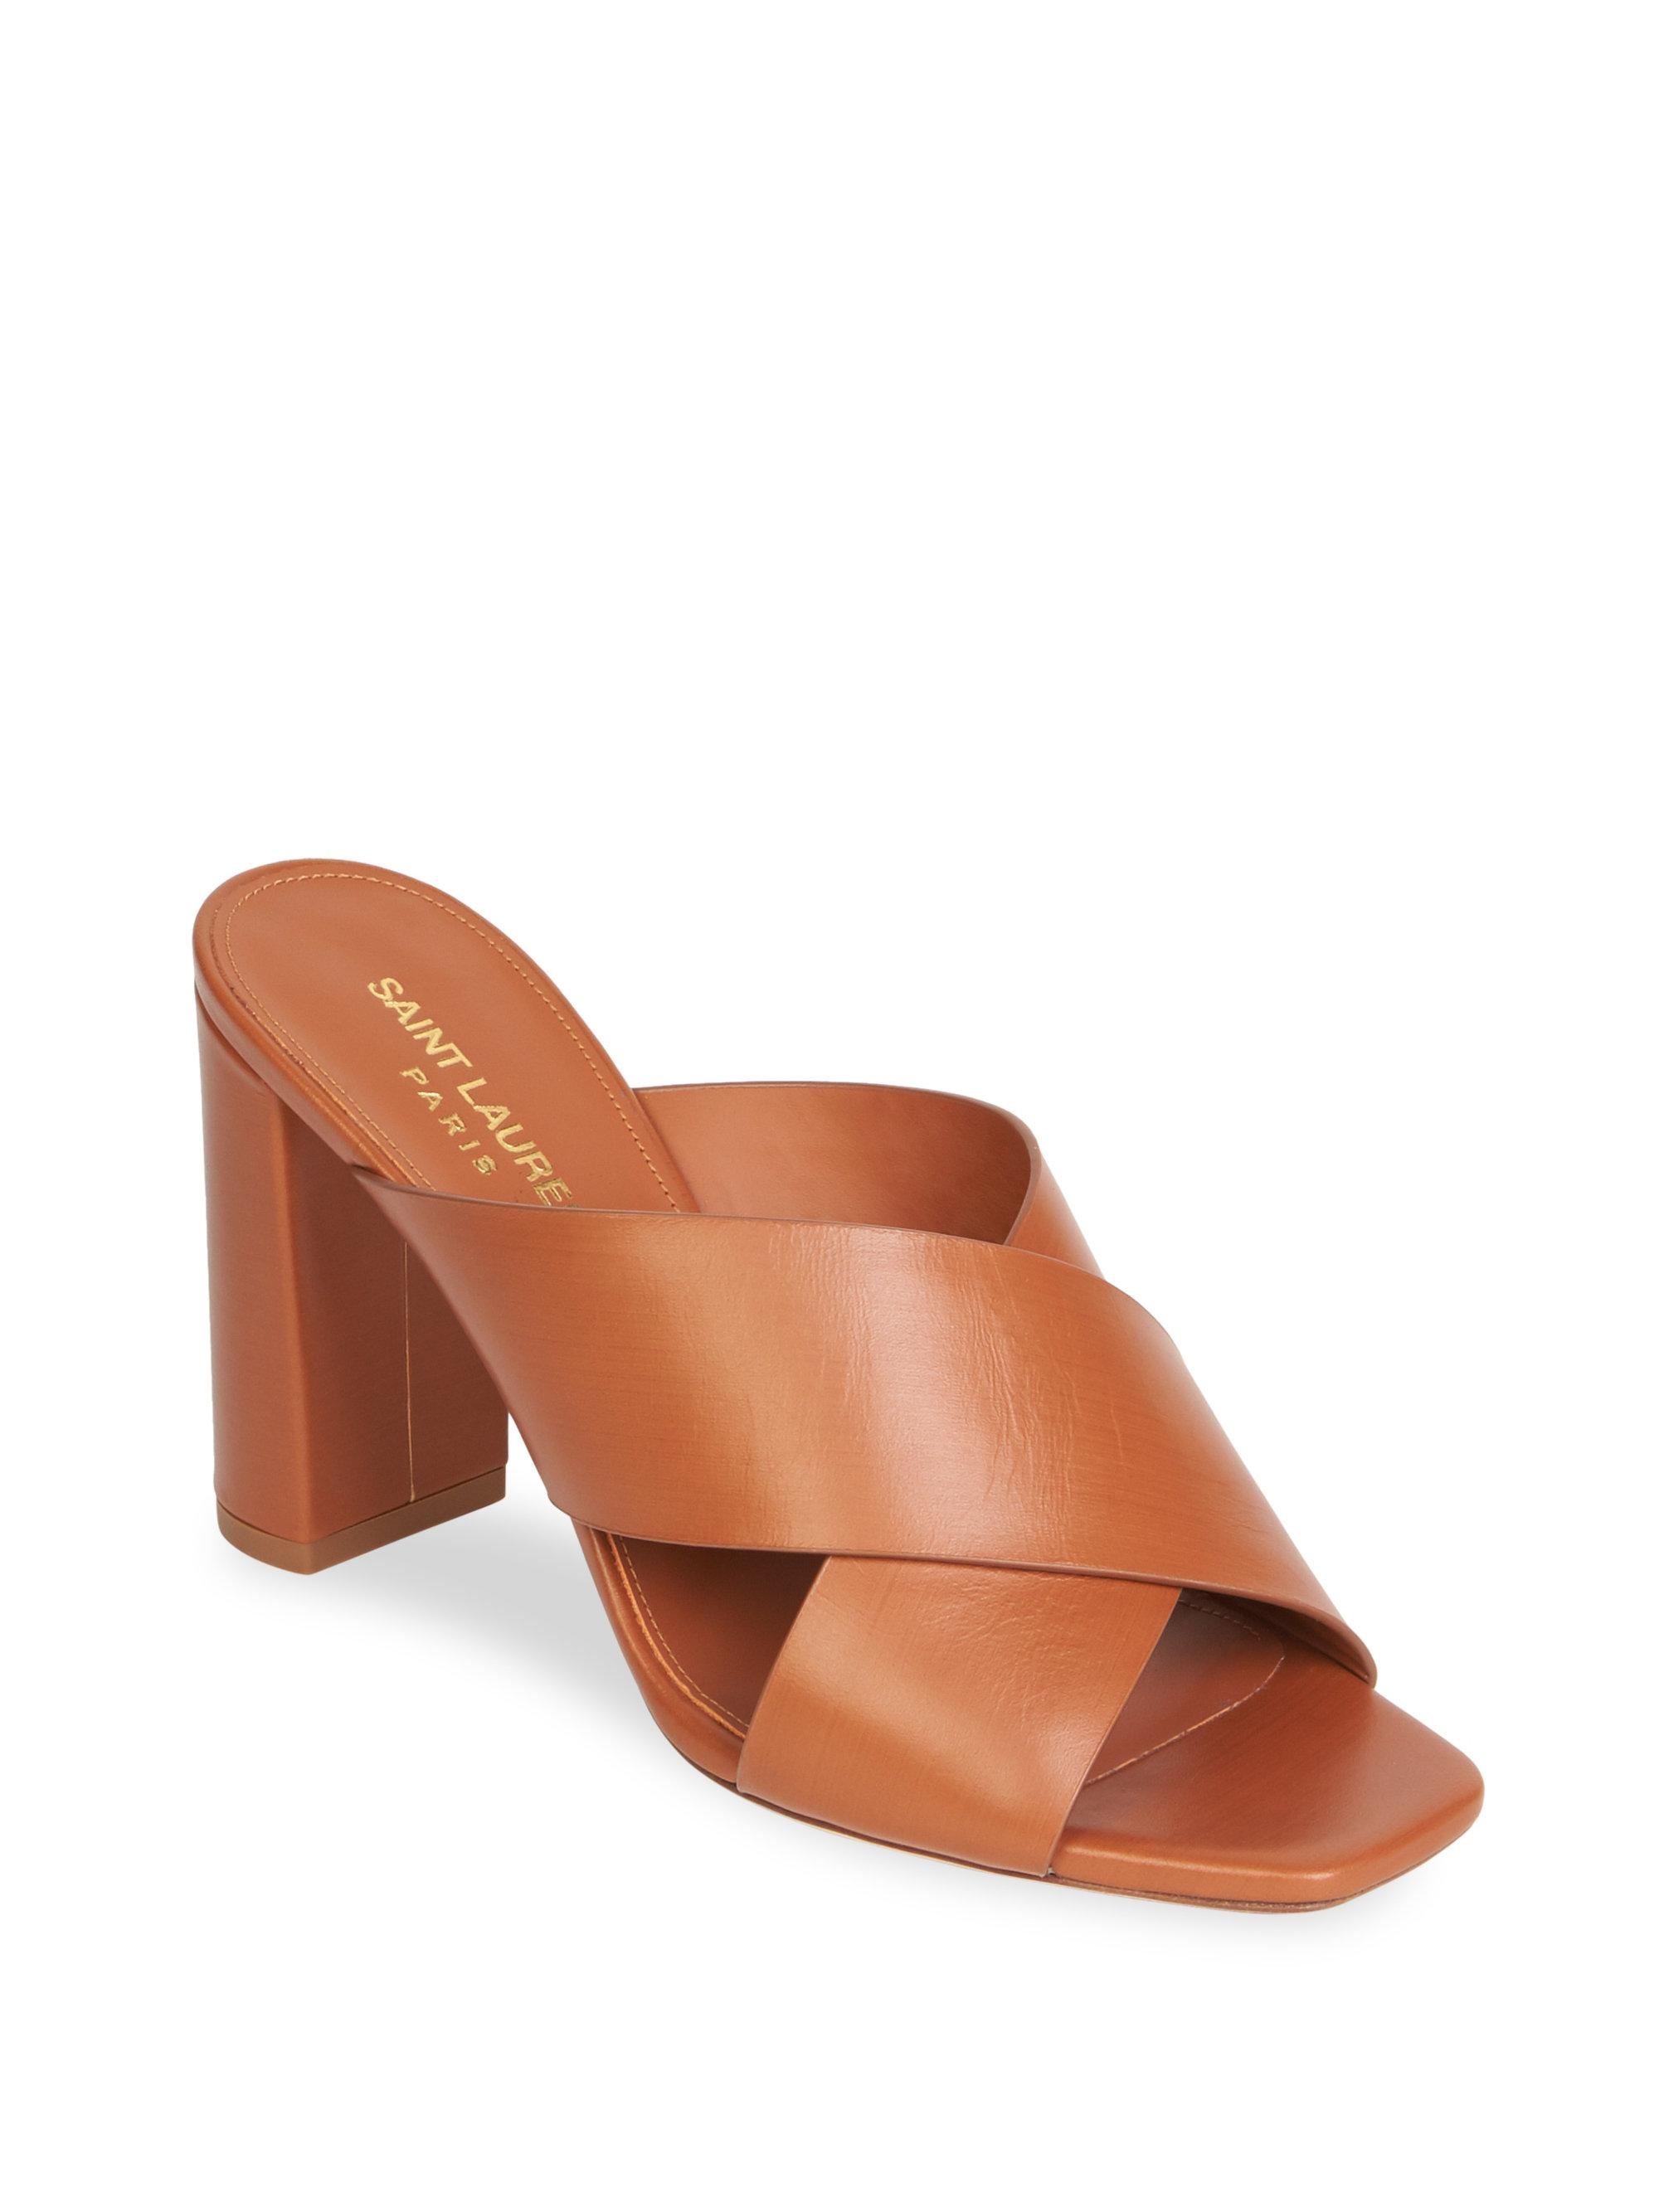 Saint Laurent LouLou 50 mules new styles cheap online collections cheap online clearance good selling 2014 unisex online 8bCqJ